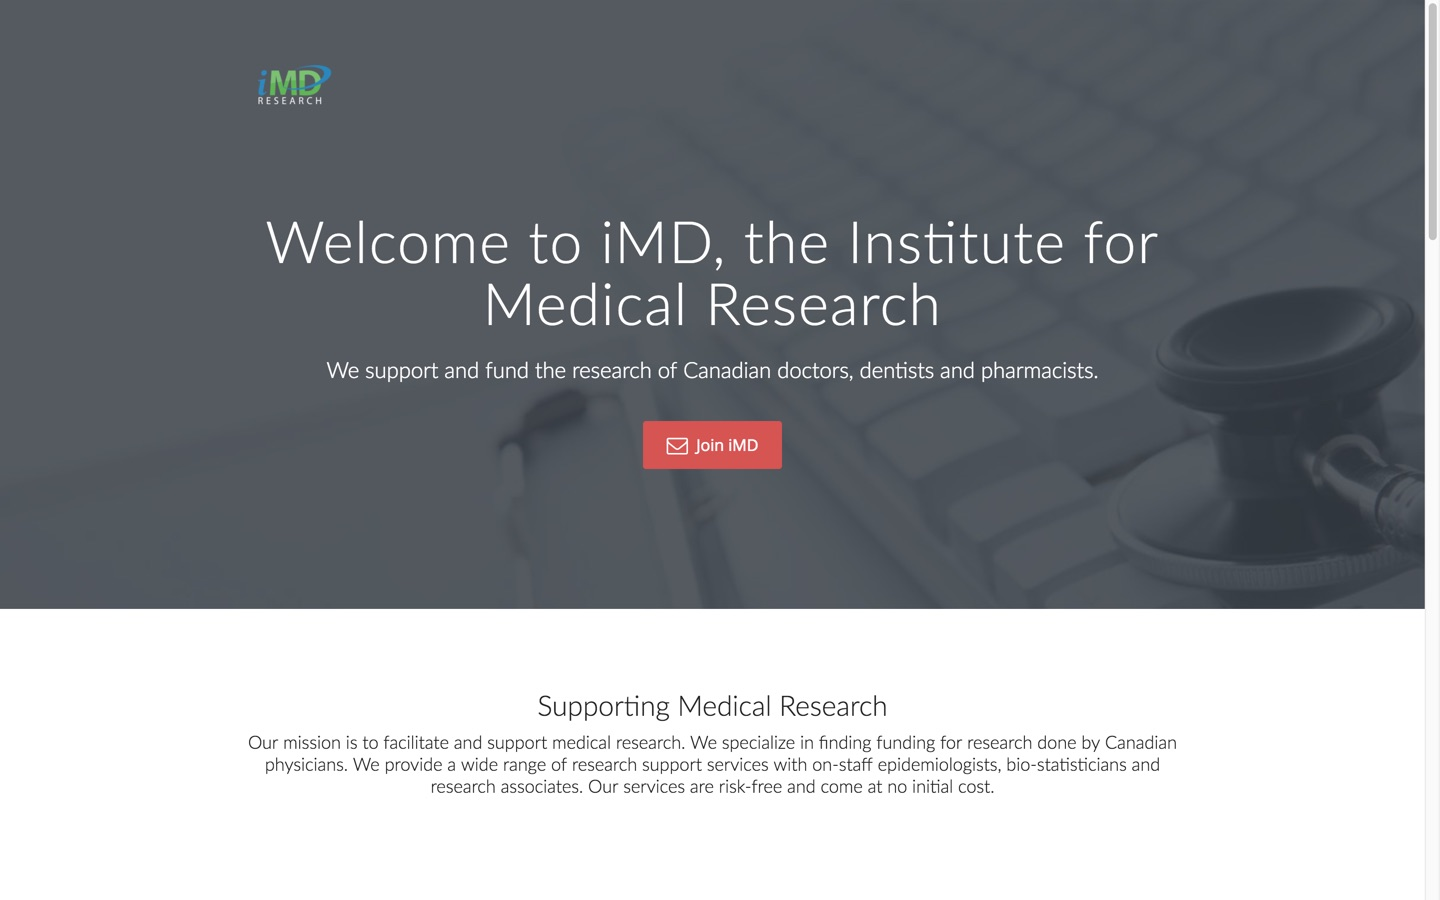 iMD Research